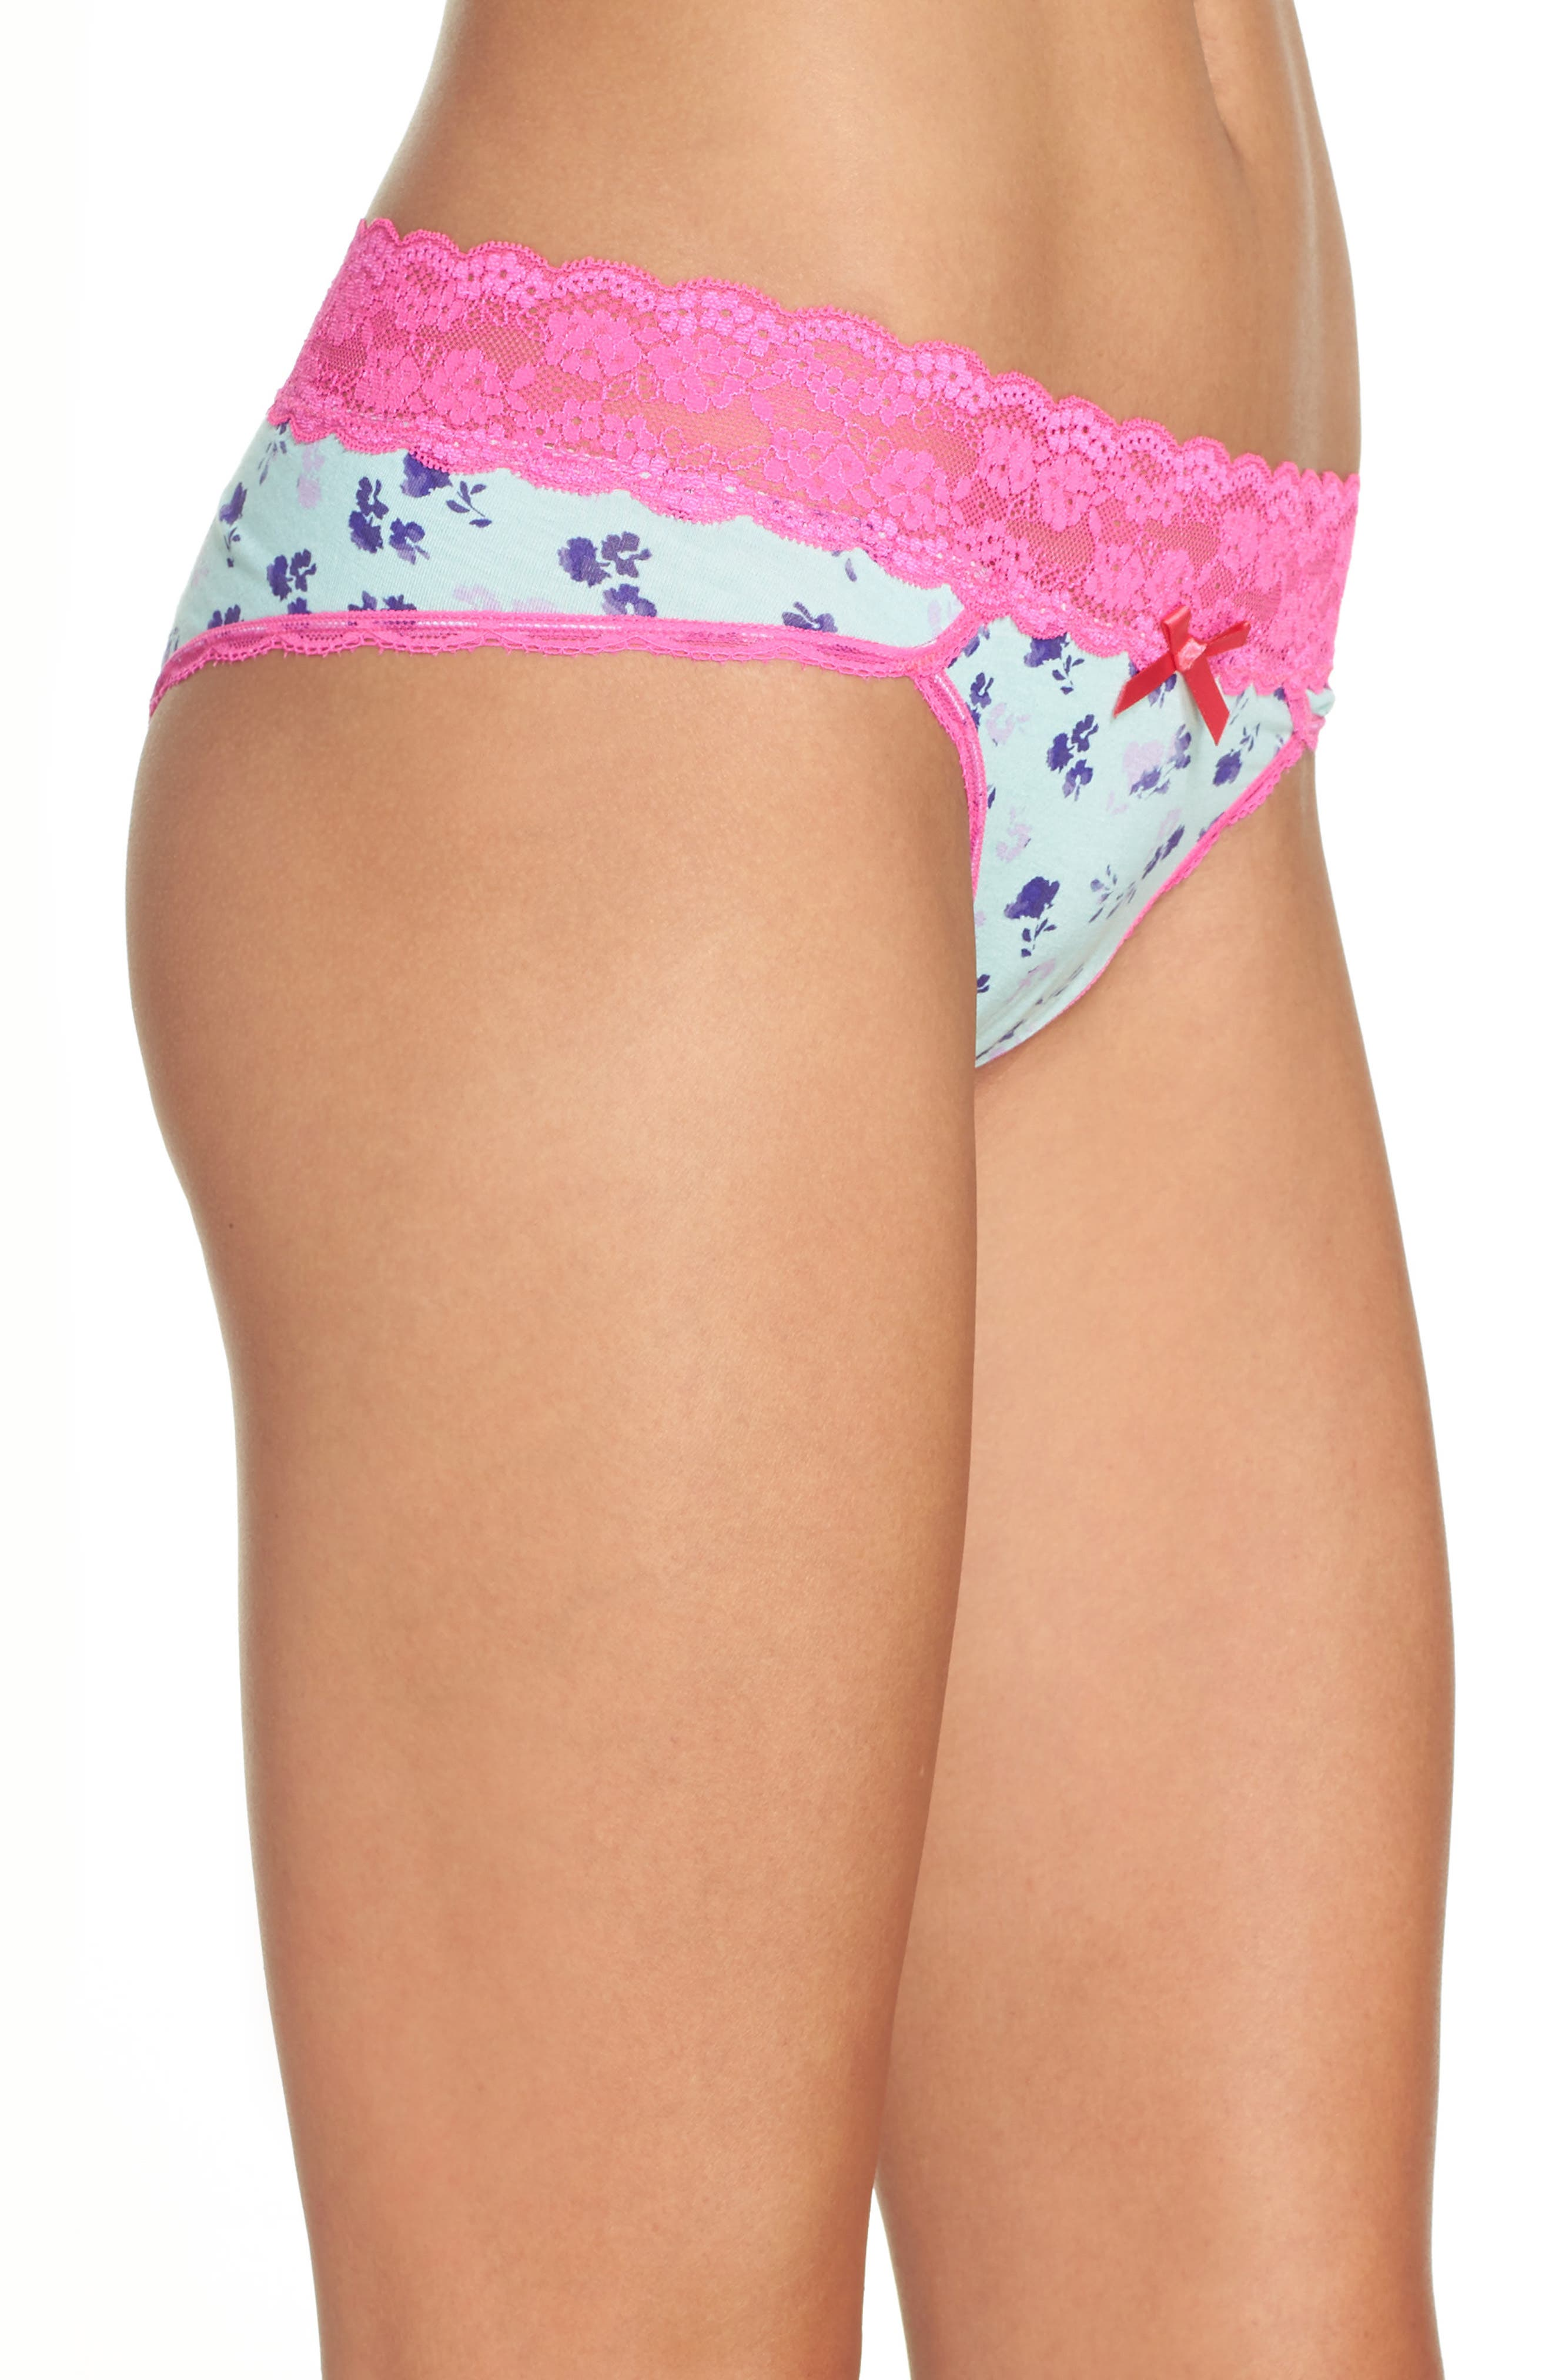 Alternate Image 3  - Honeydew Intimates Lace Waistband Hipster Panties (3 for $33)